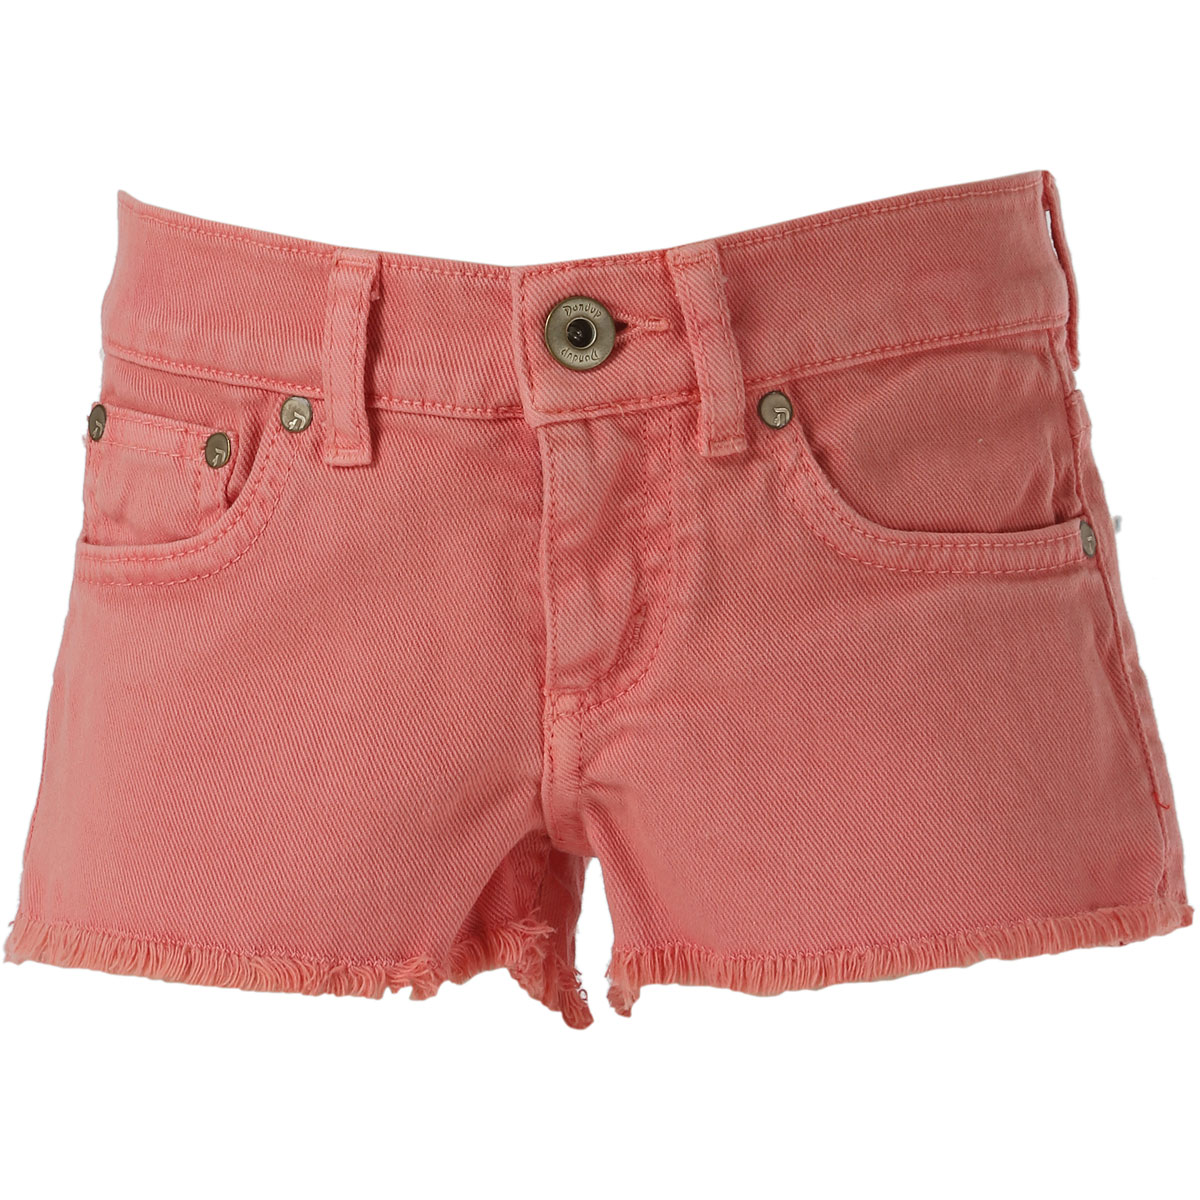 Image of Dondup Kids Shorts for Girls On Sale in Outlet, Alexa, Salmon Pink, Cotton, 2017, 4Y 6Y